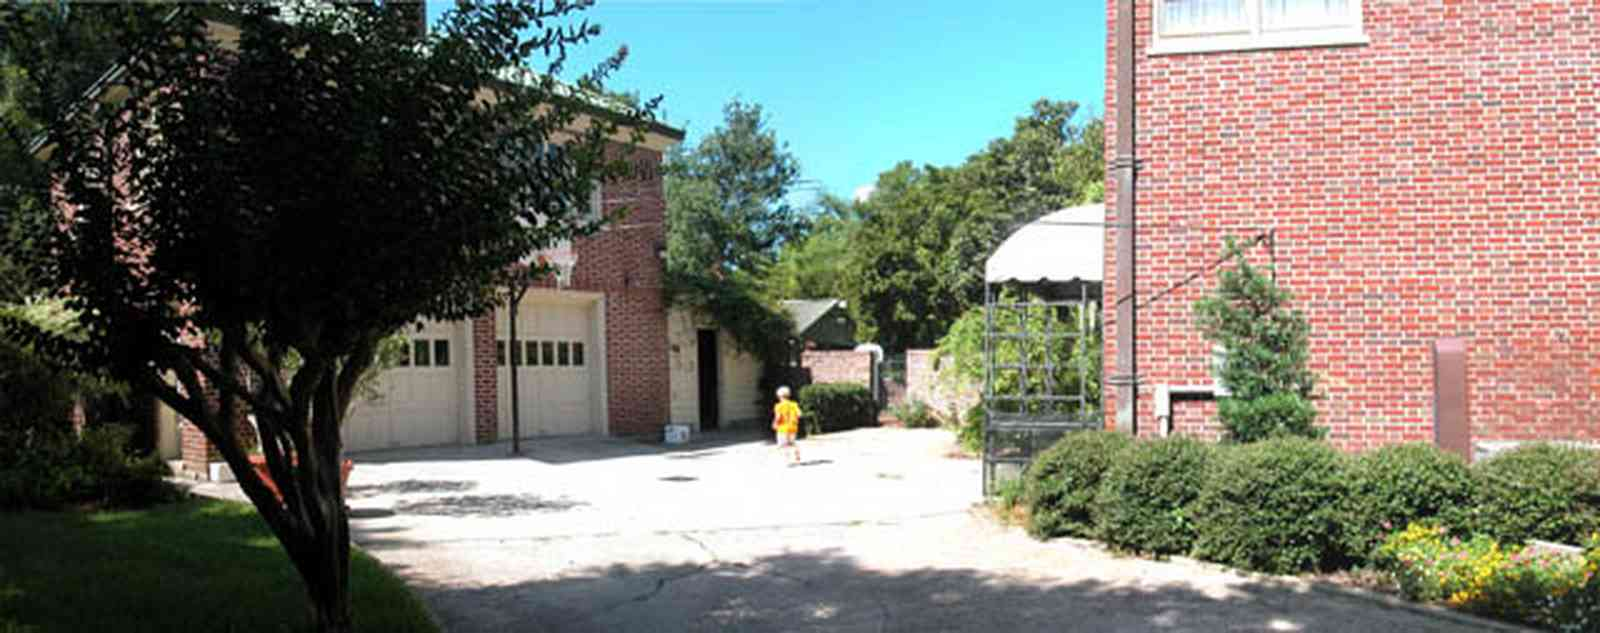 North-Hill:-105-West-Gonzales-Street_10c.jpg:  red brick house, carriage house, garage, crepe myrtle tree, french colonial architecture